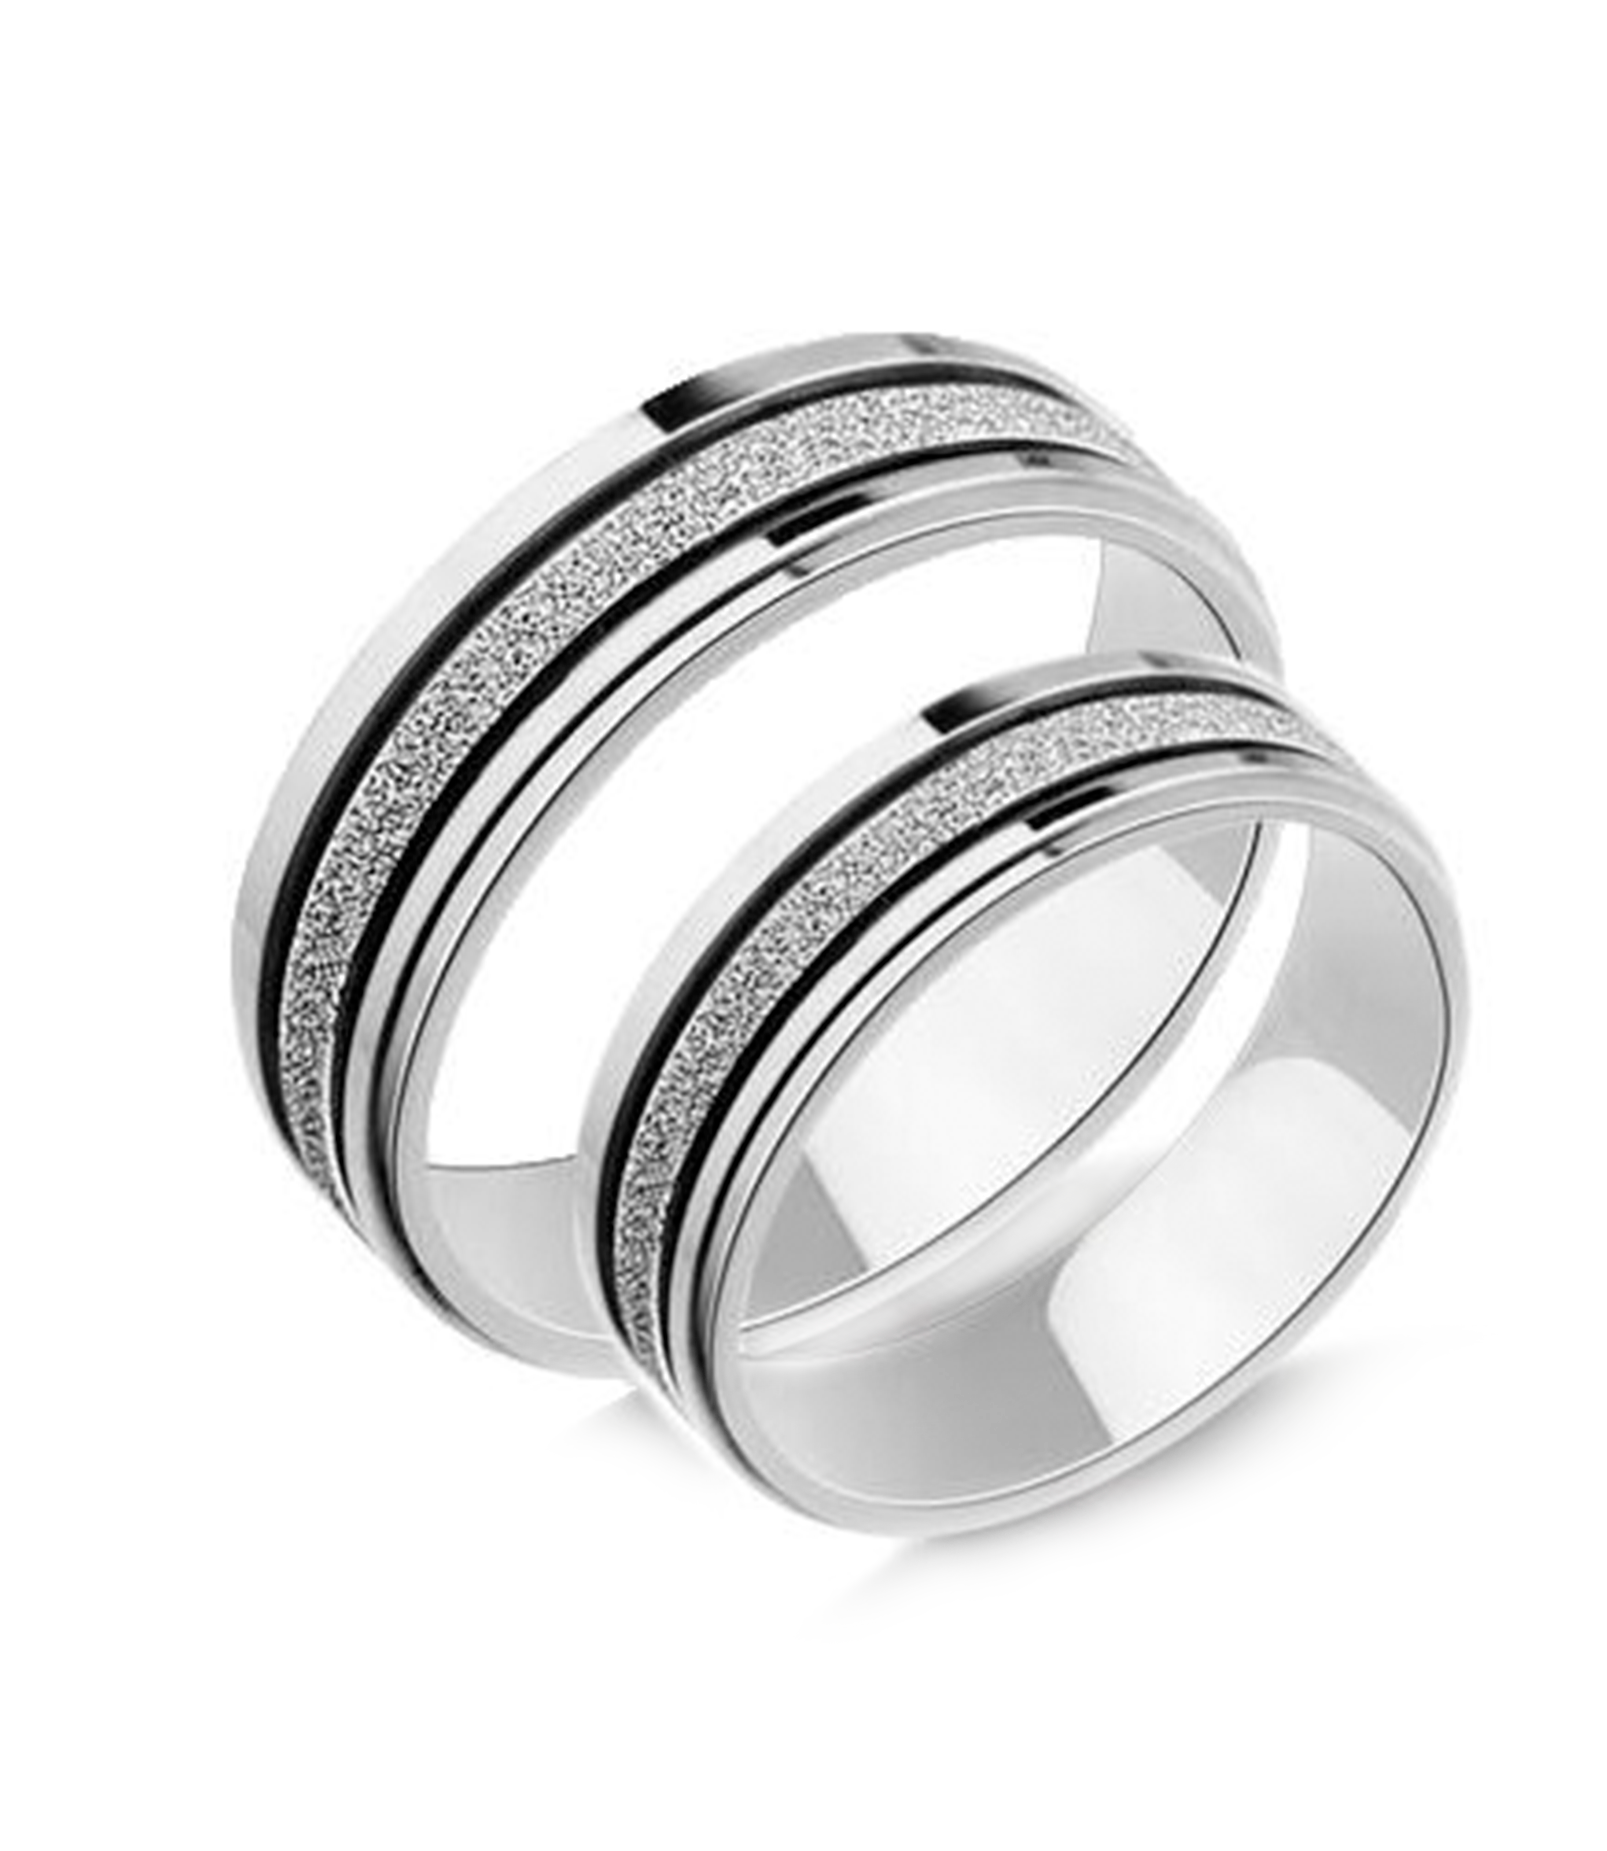 Frosted Silver Titanium Couple Rings